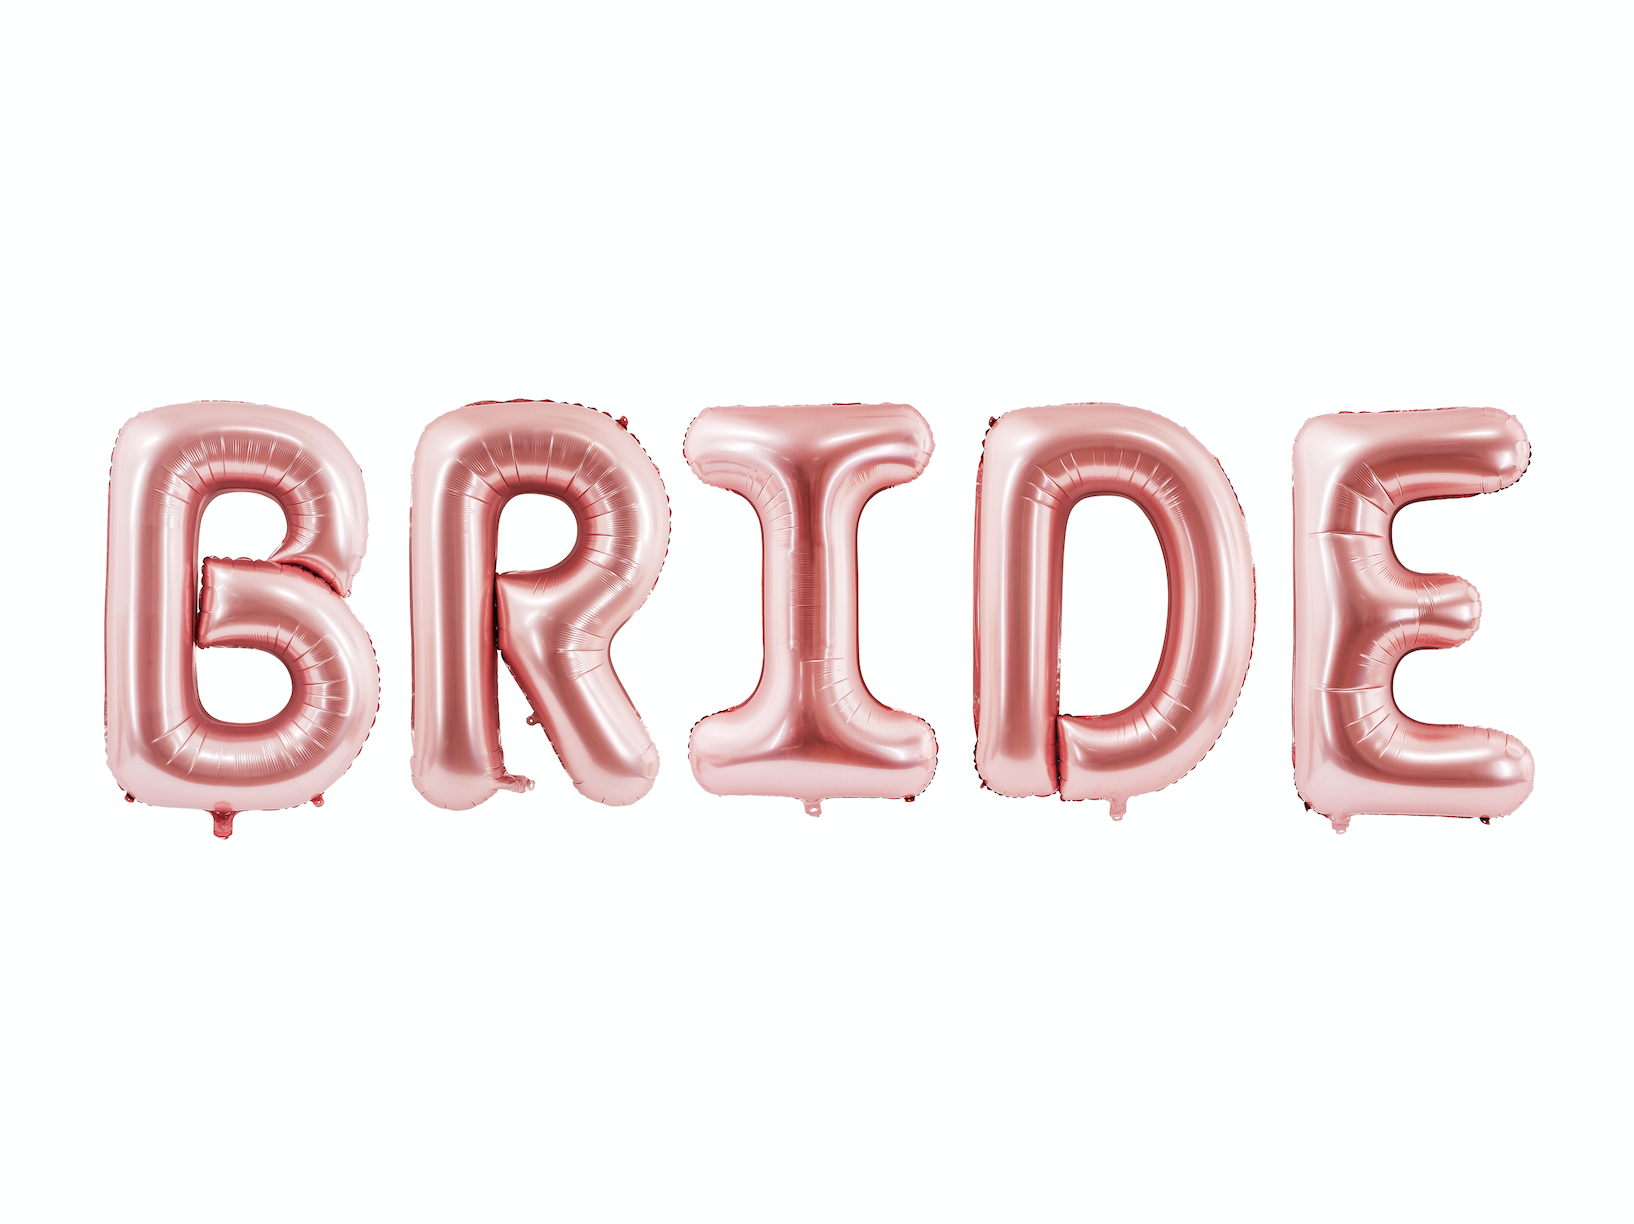 Rose Gold 'Bride' Balloon Bunting